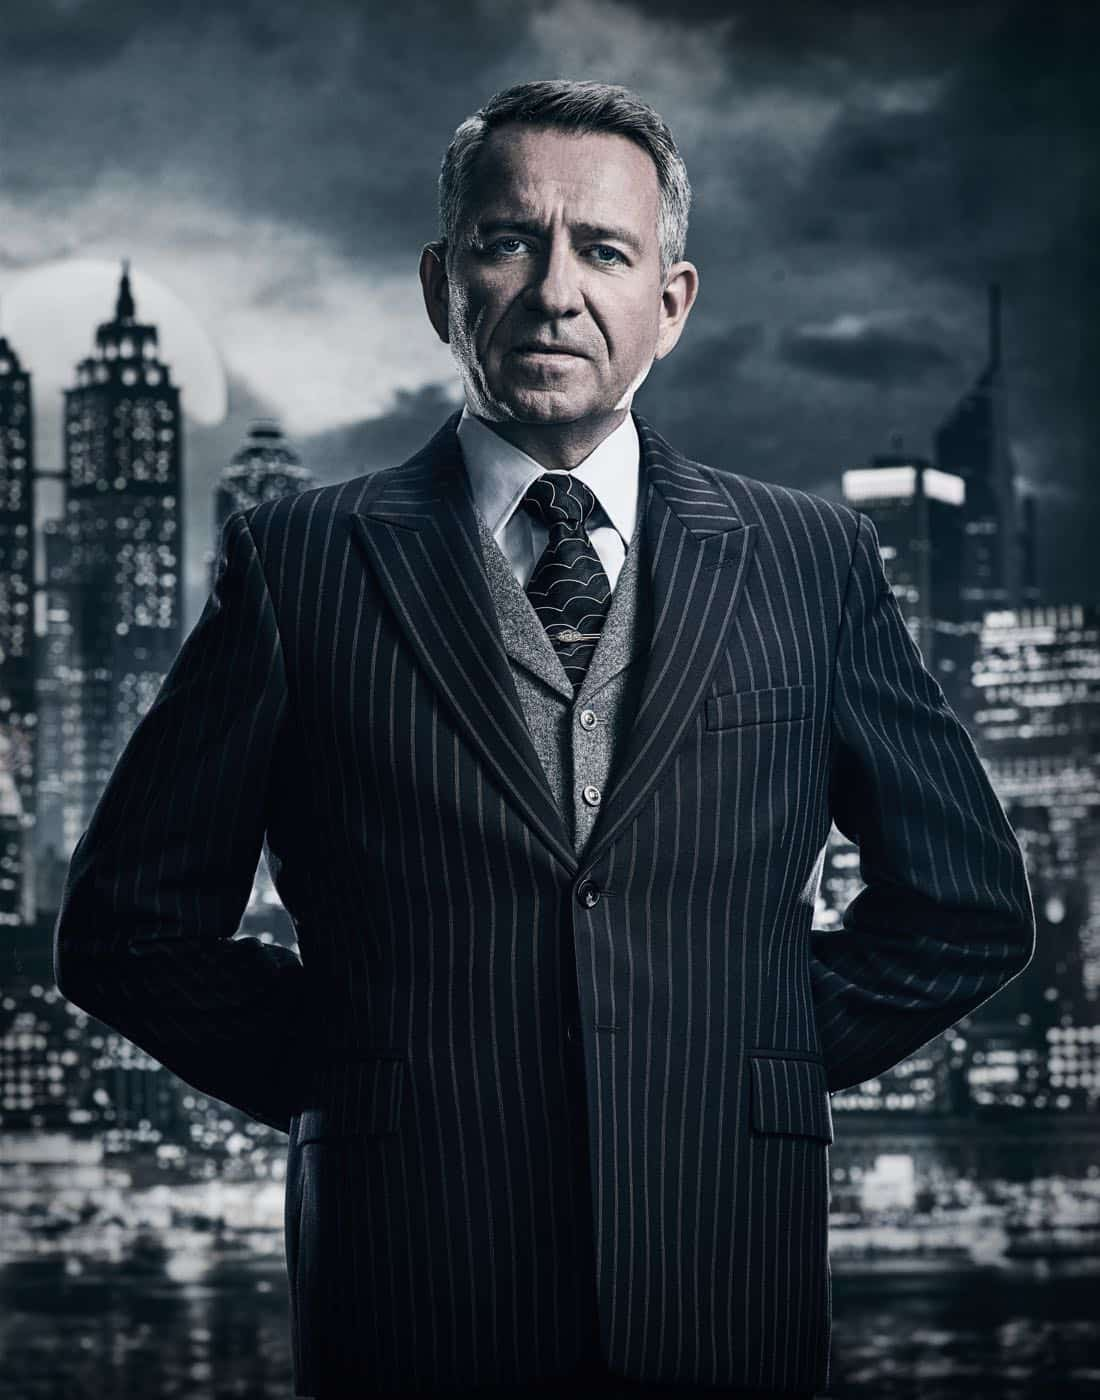 Sean Pertwee. Season 4 of GOTHAM